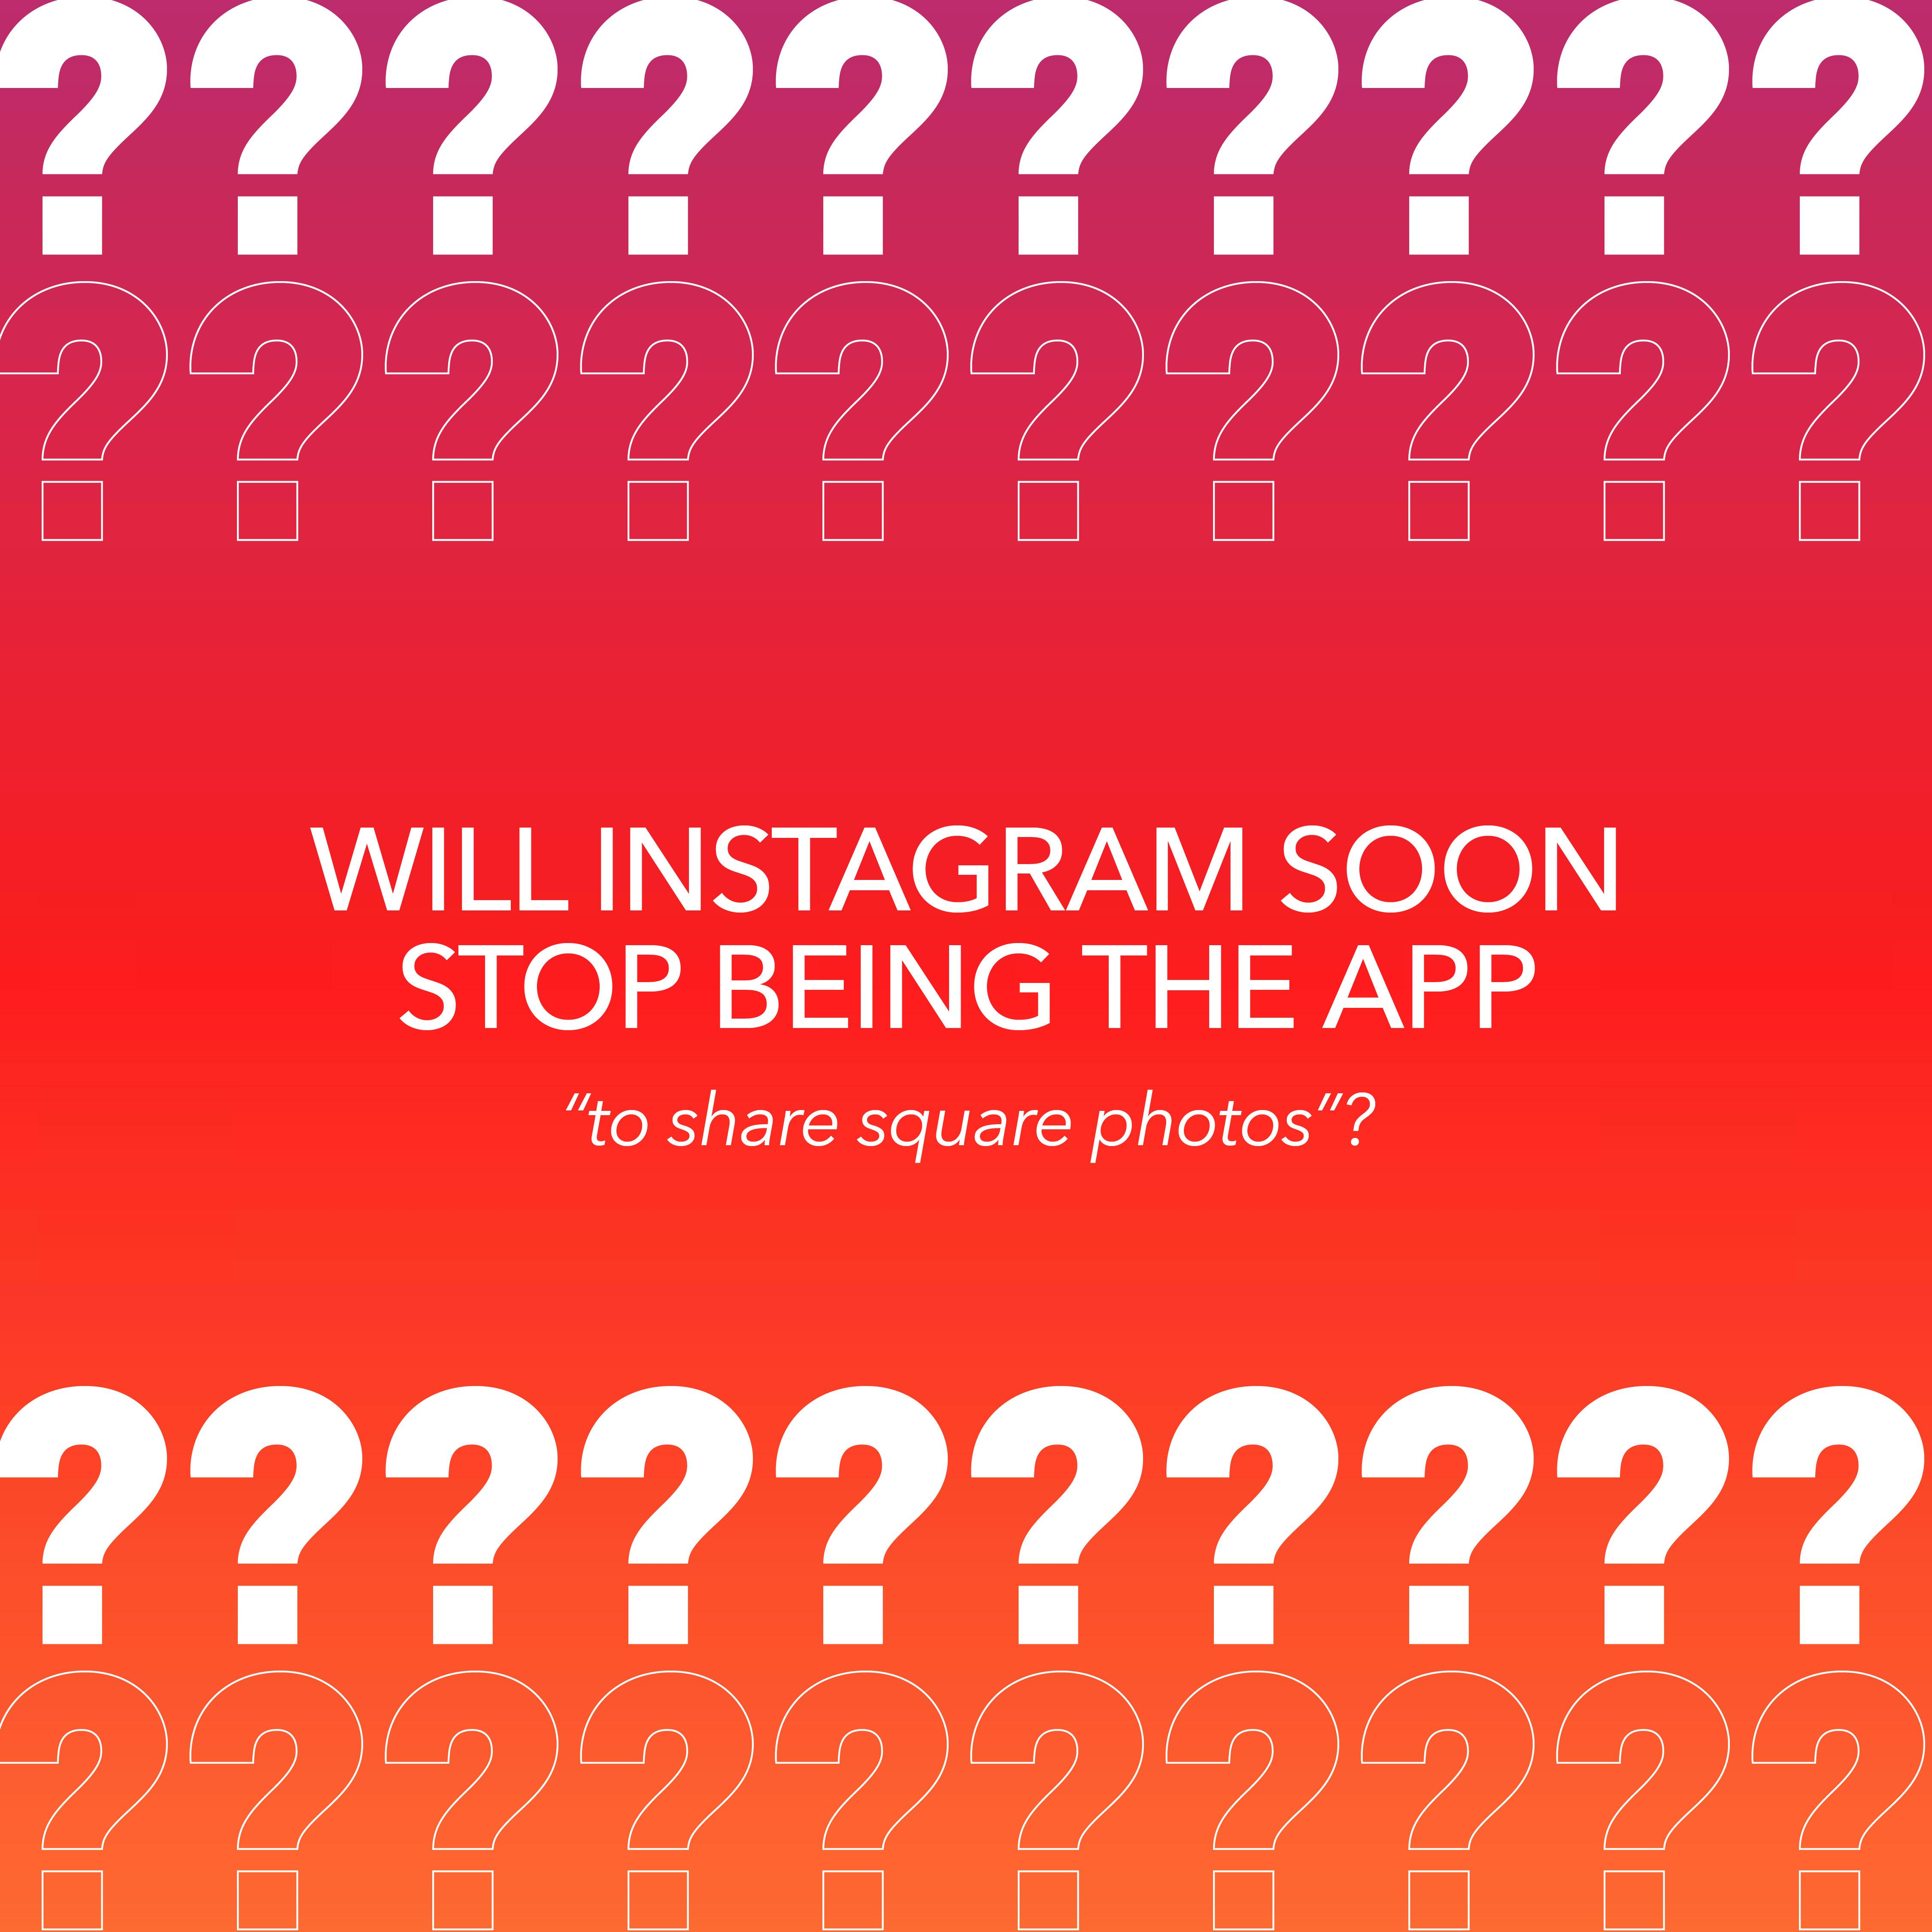 What's Next for Video Content on Instagram? - News